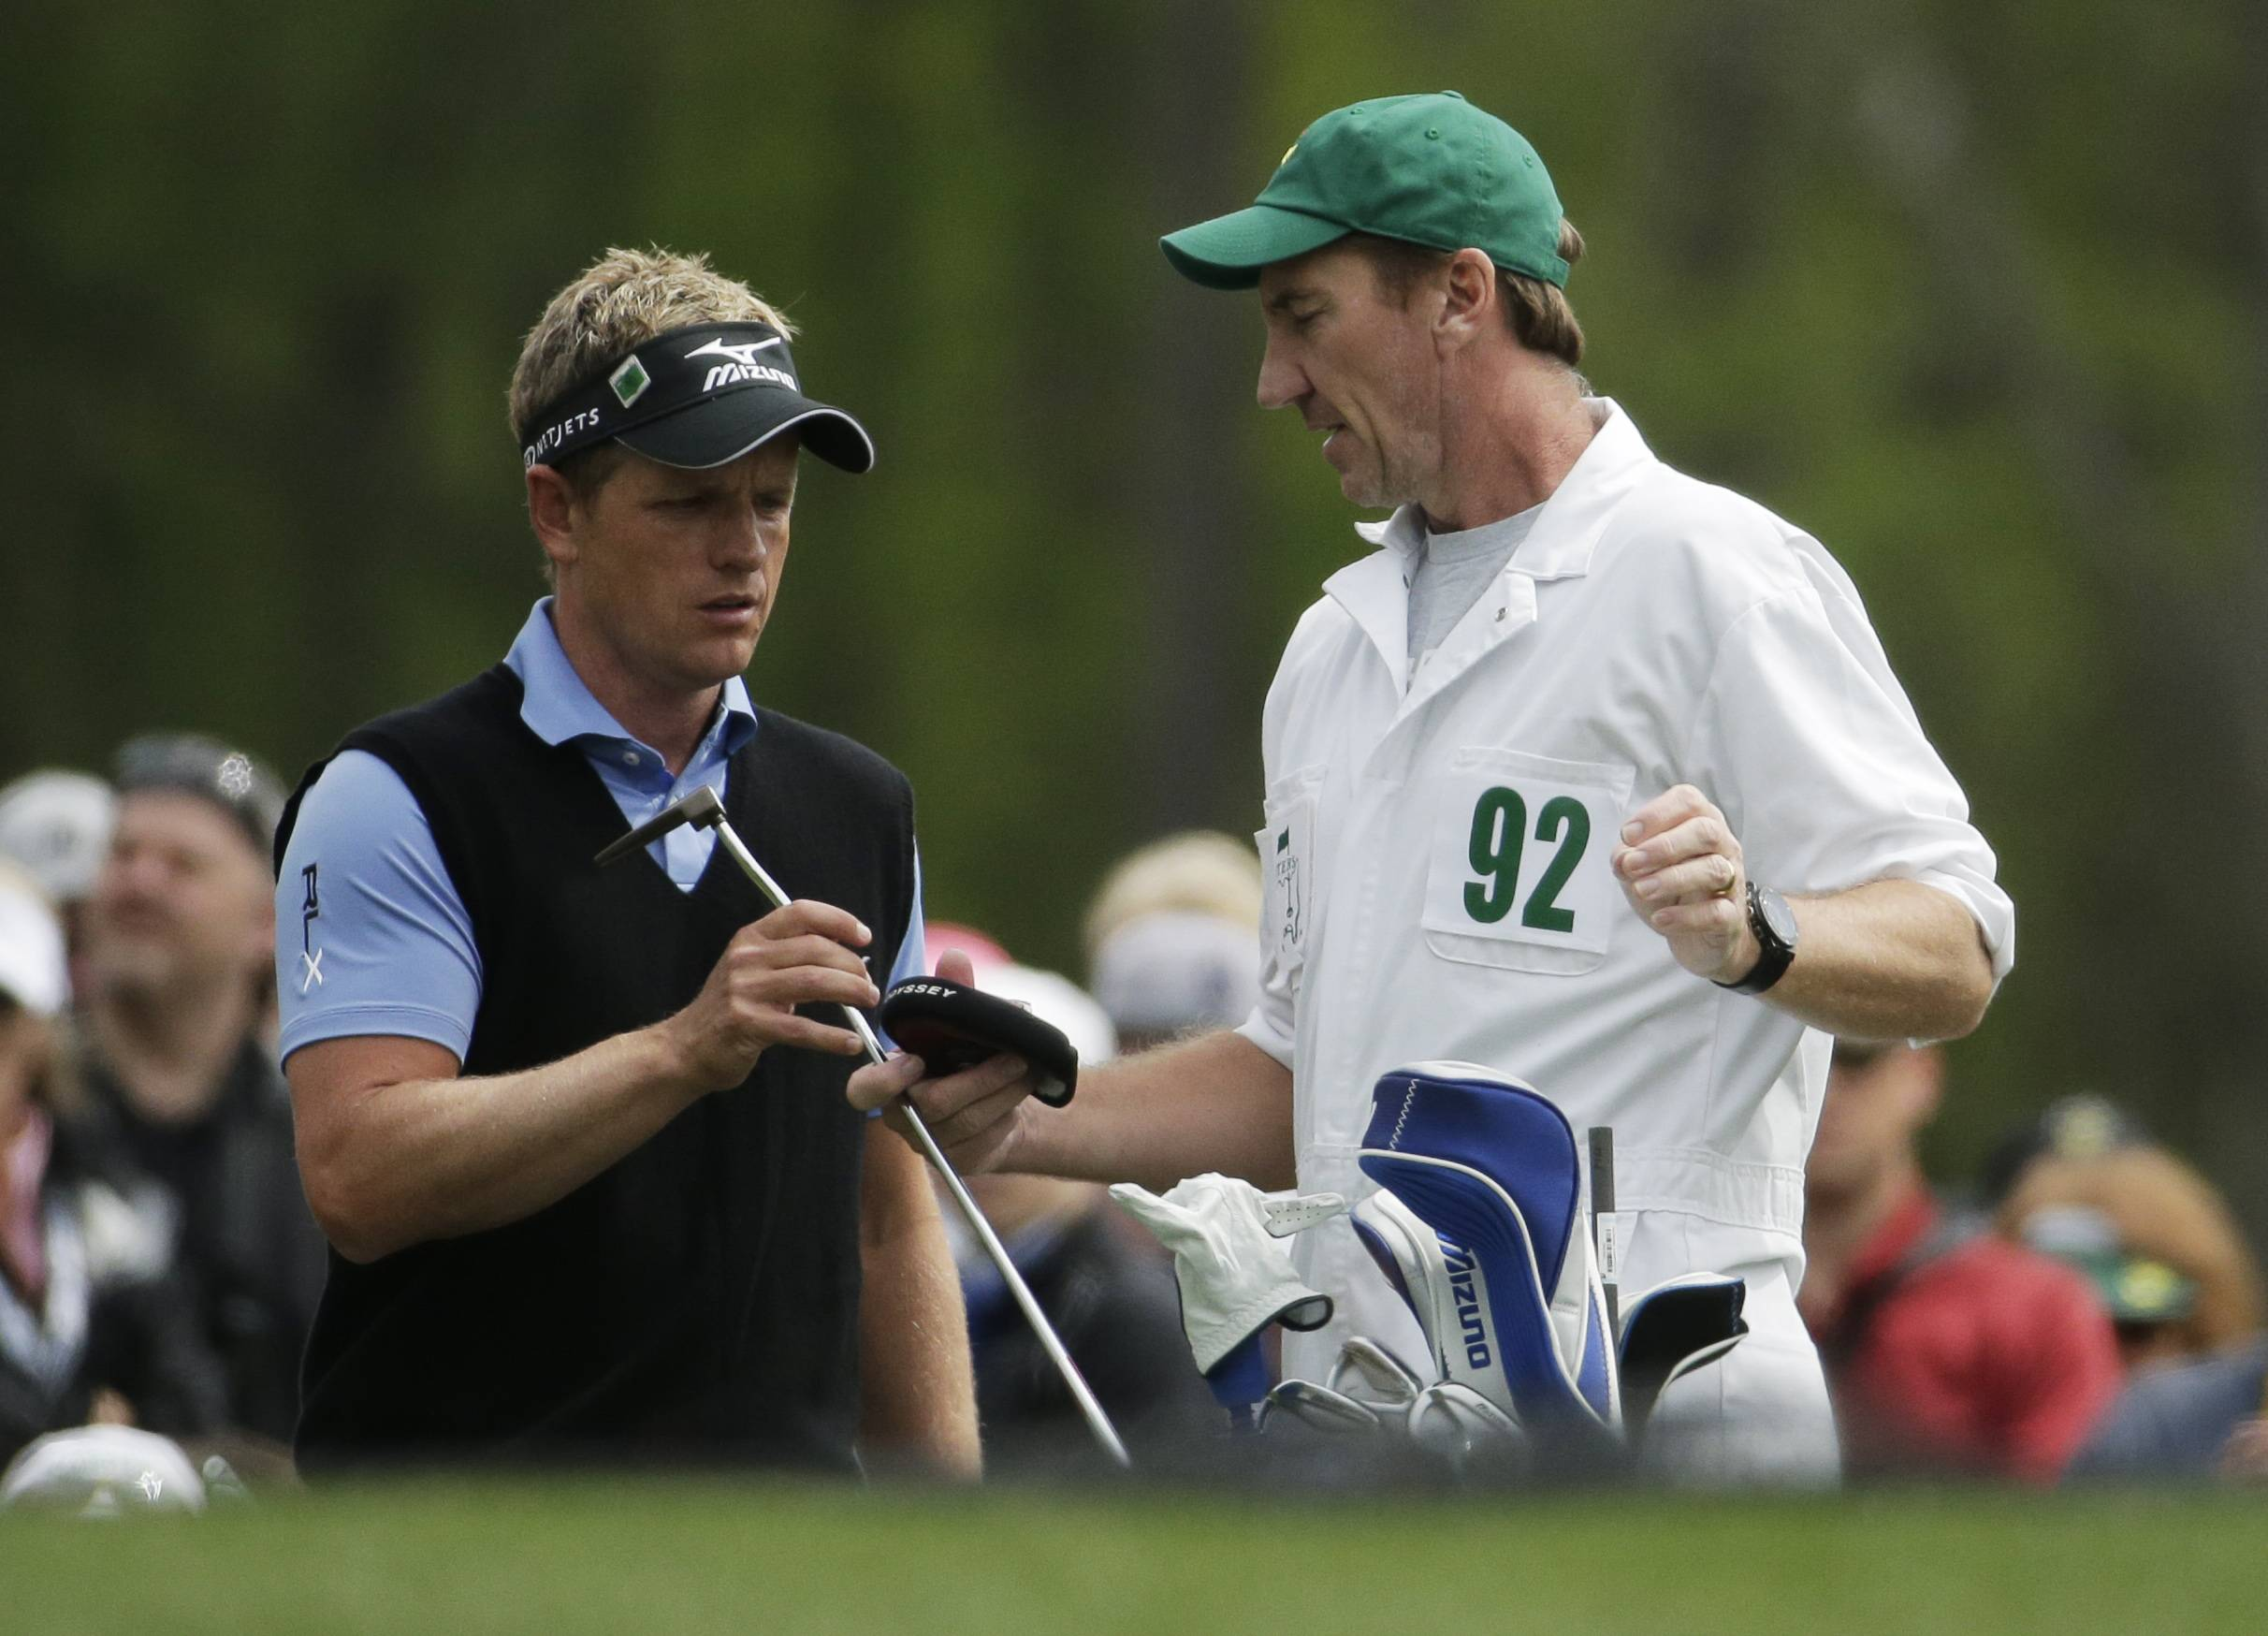 Luke Donald, of England, gets a club from his caddie on the 12th green during a practice round for the Masters golf tournament Tuesday, April 8, 2014, in Augusta, Ga. (AP Photo/Chris Carlson)